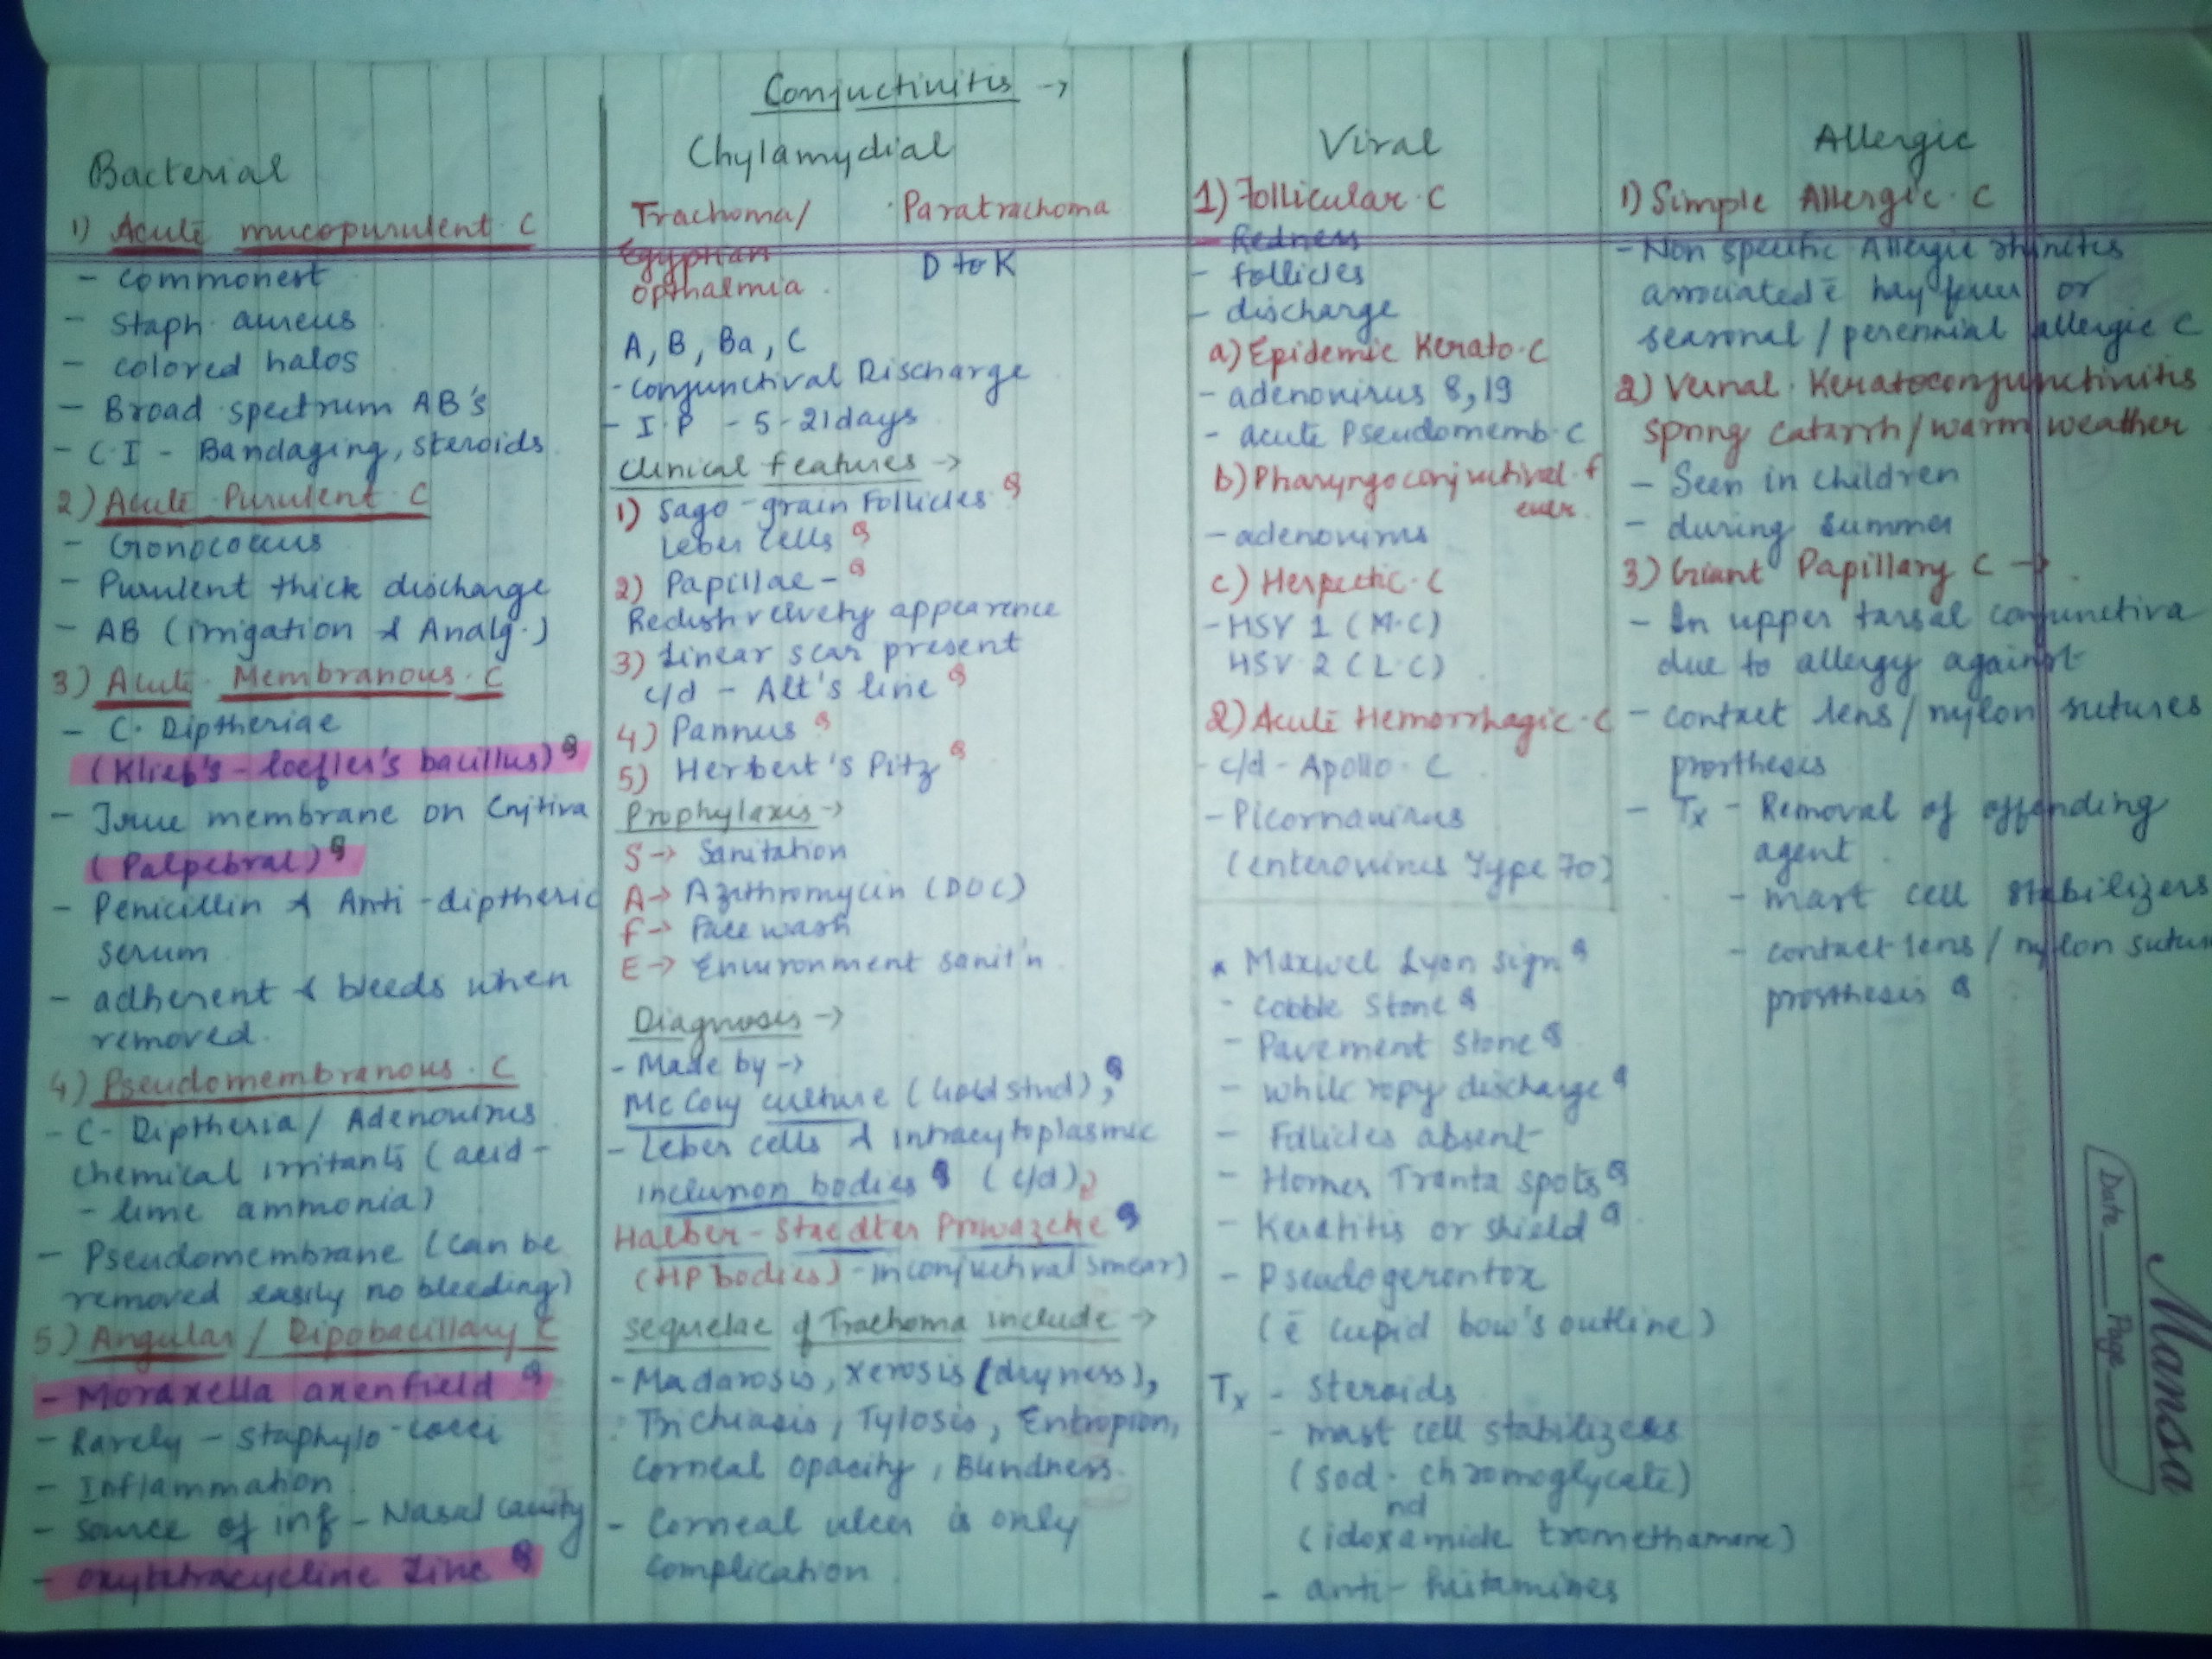 #Opthalmology #Conjunctivitis Notes